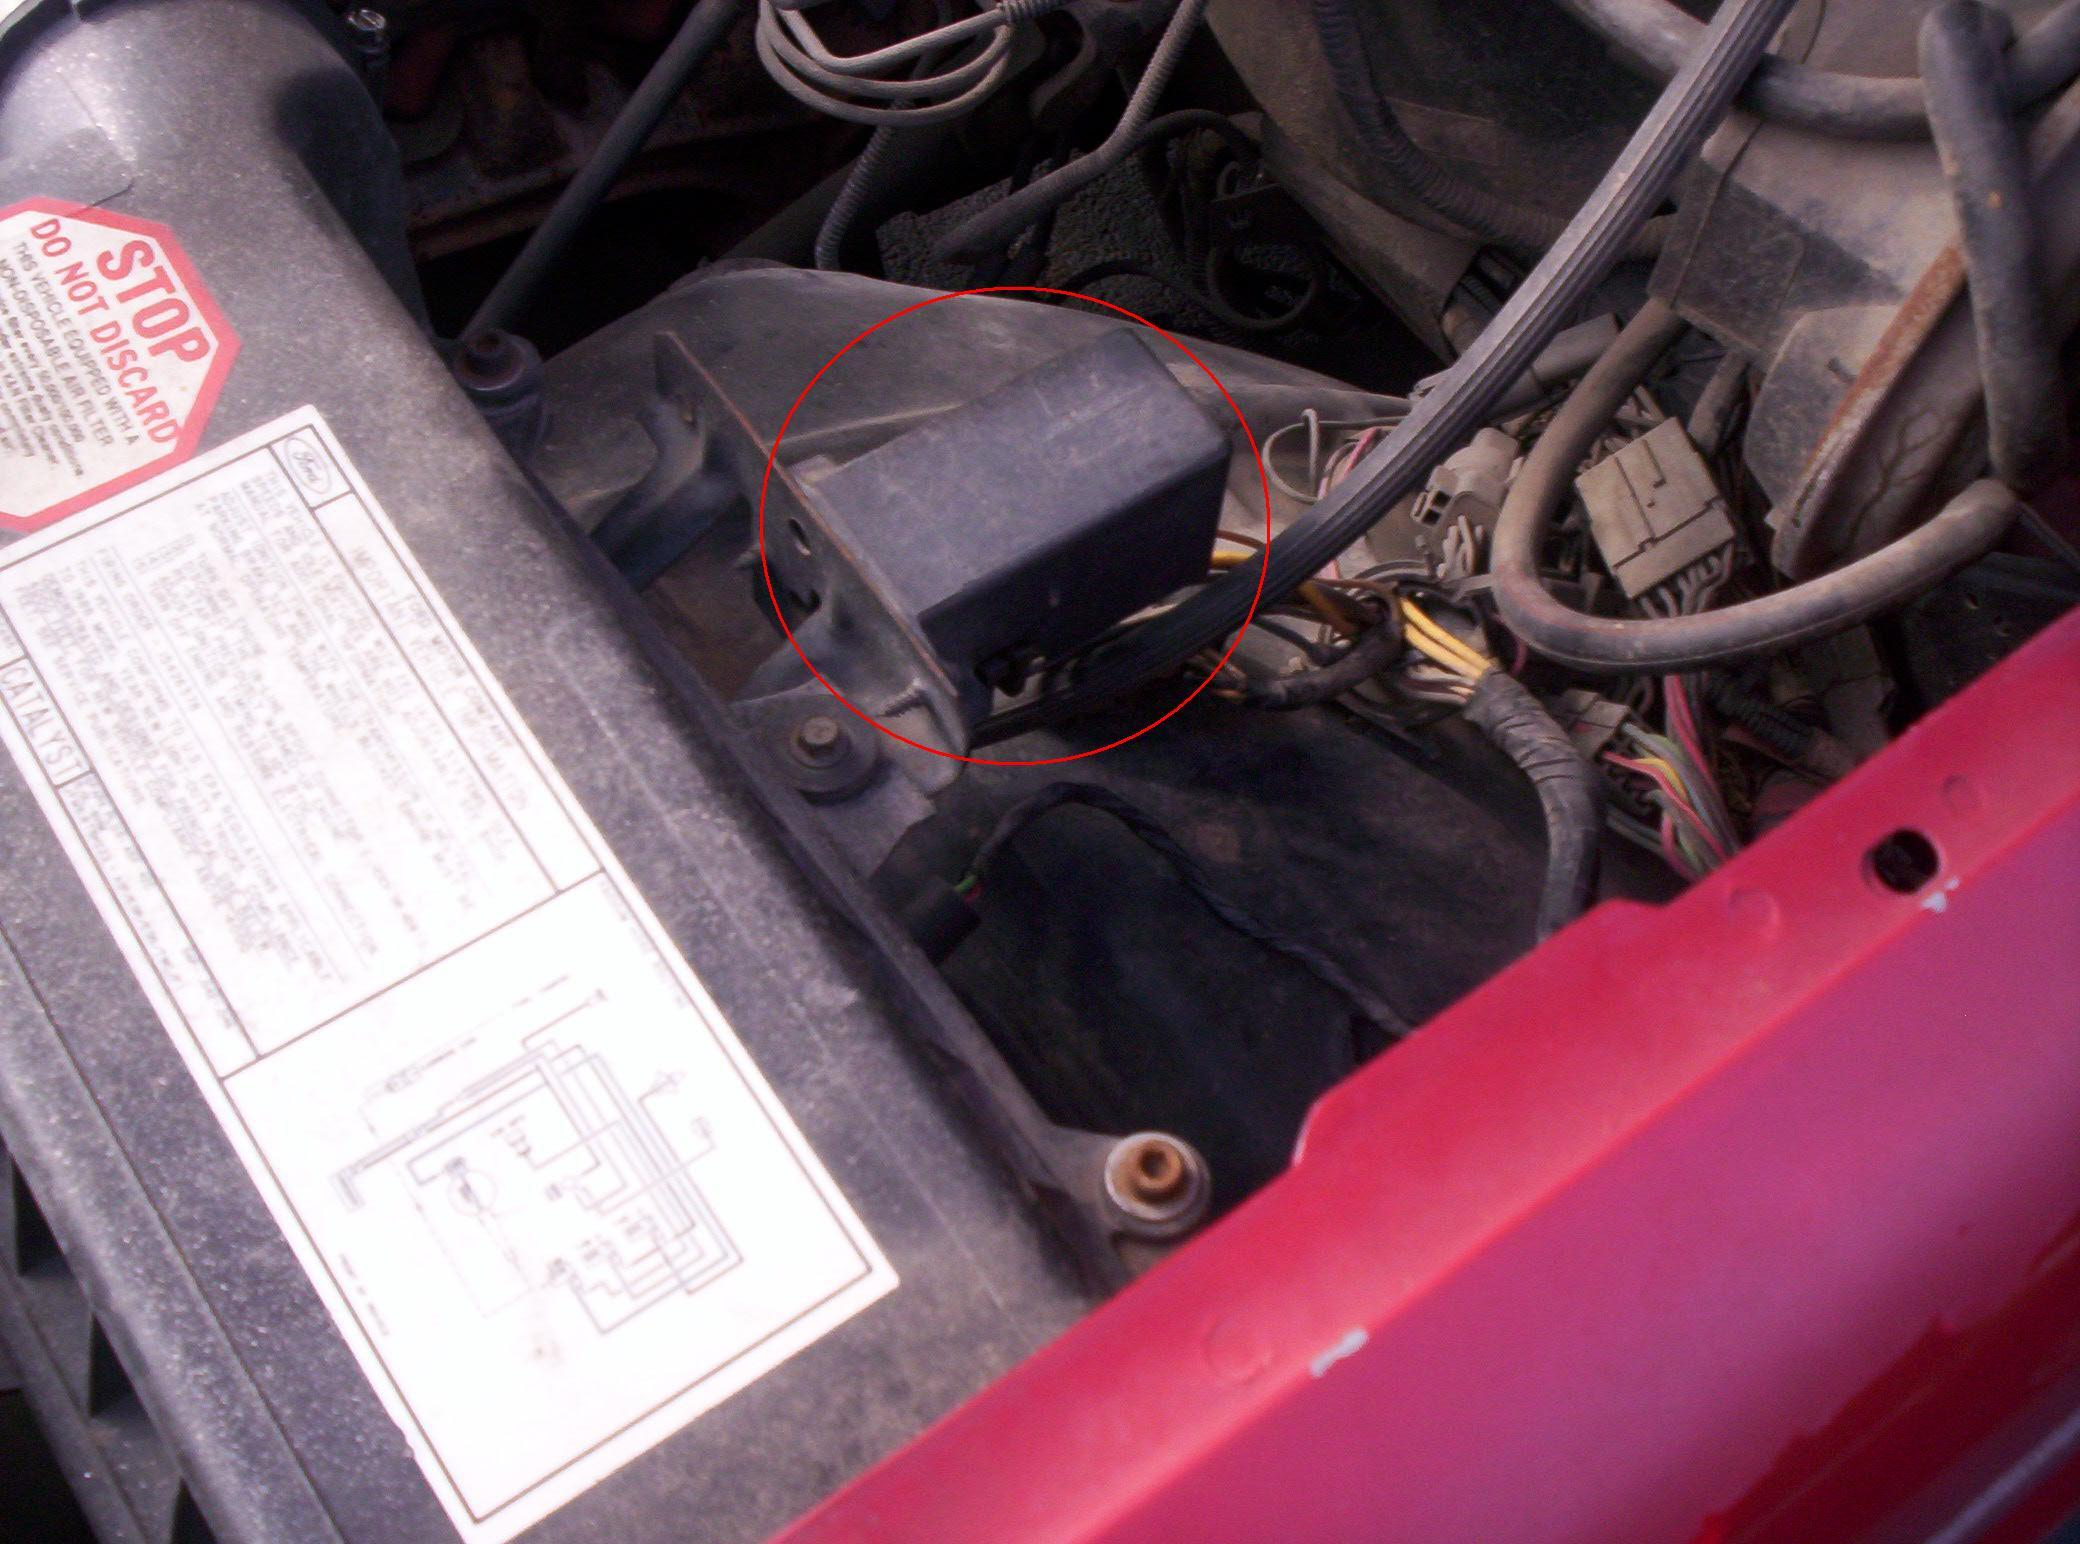 1992 Ford F 150 Fuel Pump Wiring Diagram Library 1990 F53 After My Vehicle Stalled And Would Not Start I Got Memory Code 87 Rh Justanswer Com